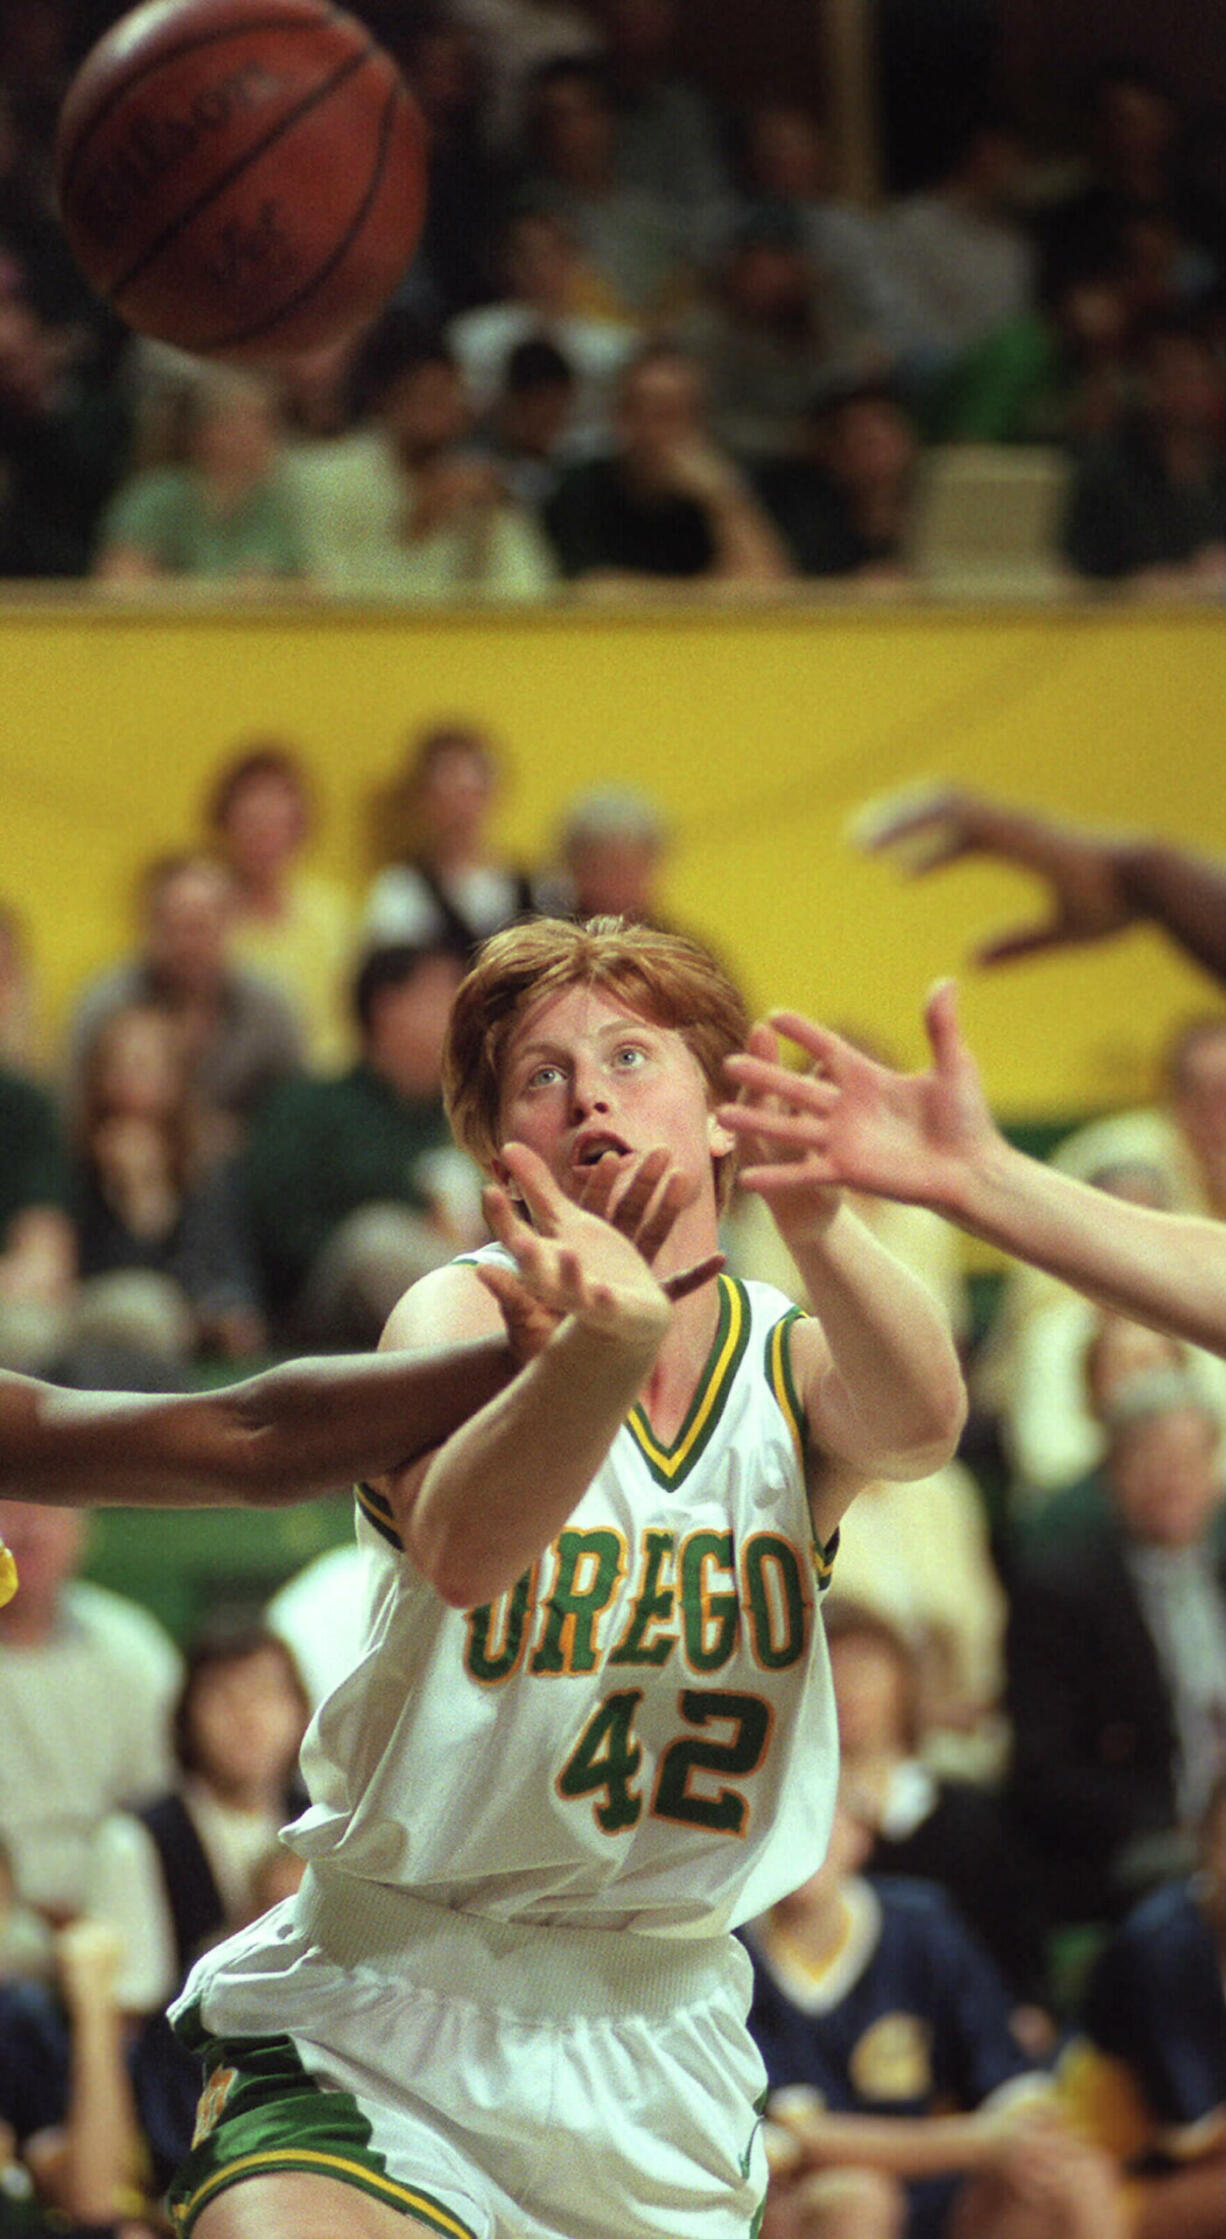 Arianne Boyer, a Fort Vancouver High graduate pictured here in 1997,  was named to the Oregon Athletics Hall of Fame class of 2021. She was just the fifth Duck in program history to score 1,500 career points and was just the third All-American at Oregon.